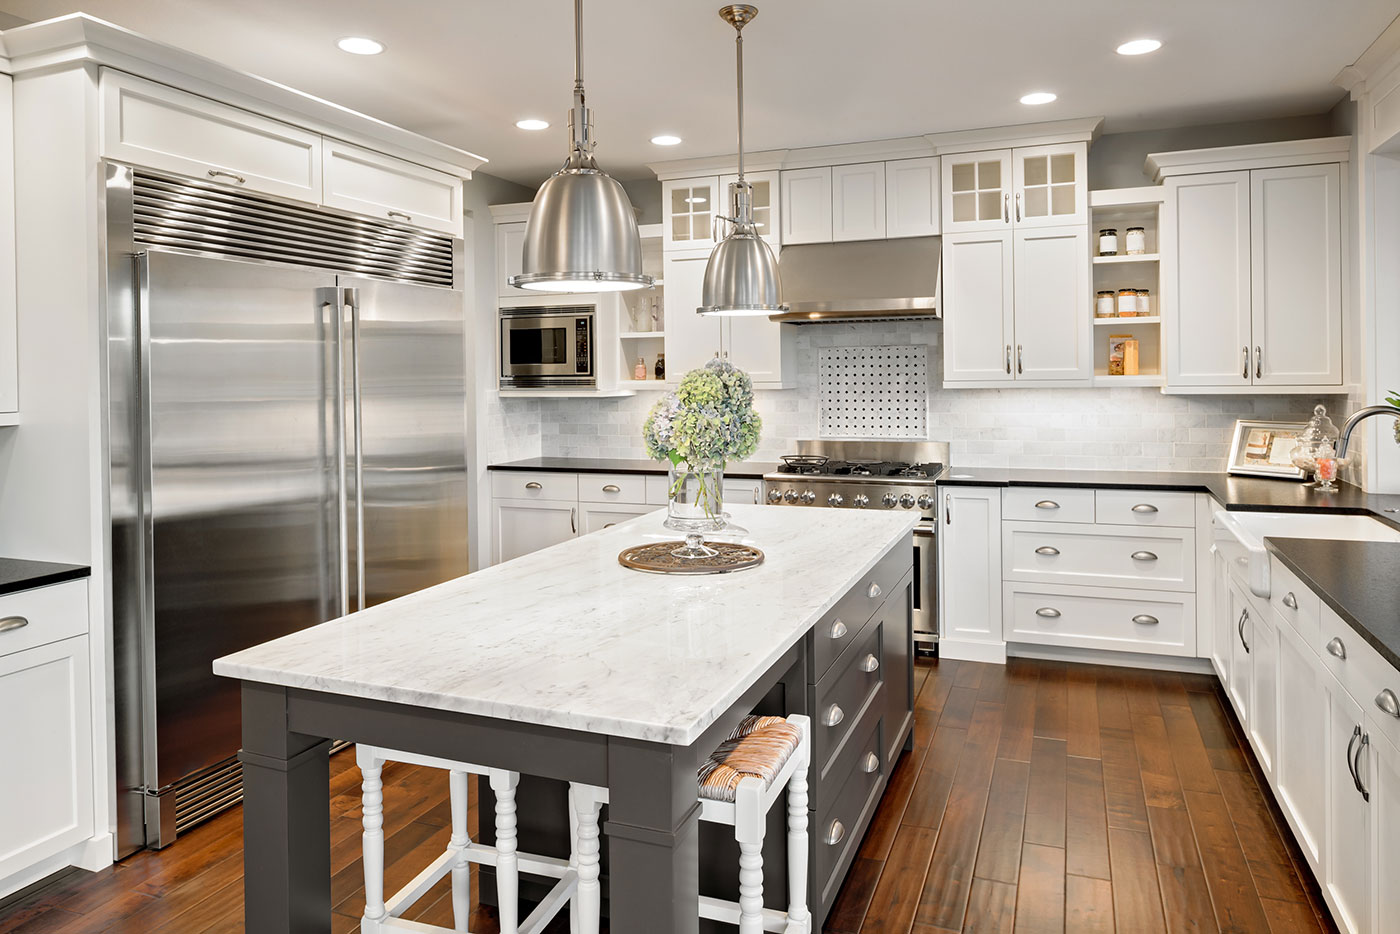 Kitchen cabinet refacing north vancouver - Turn Your Old Cabinets Into Brand New Cabinets